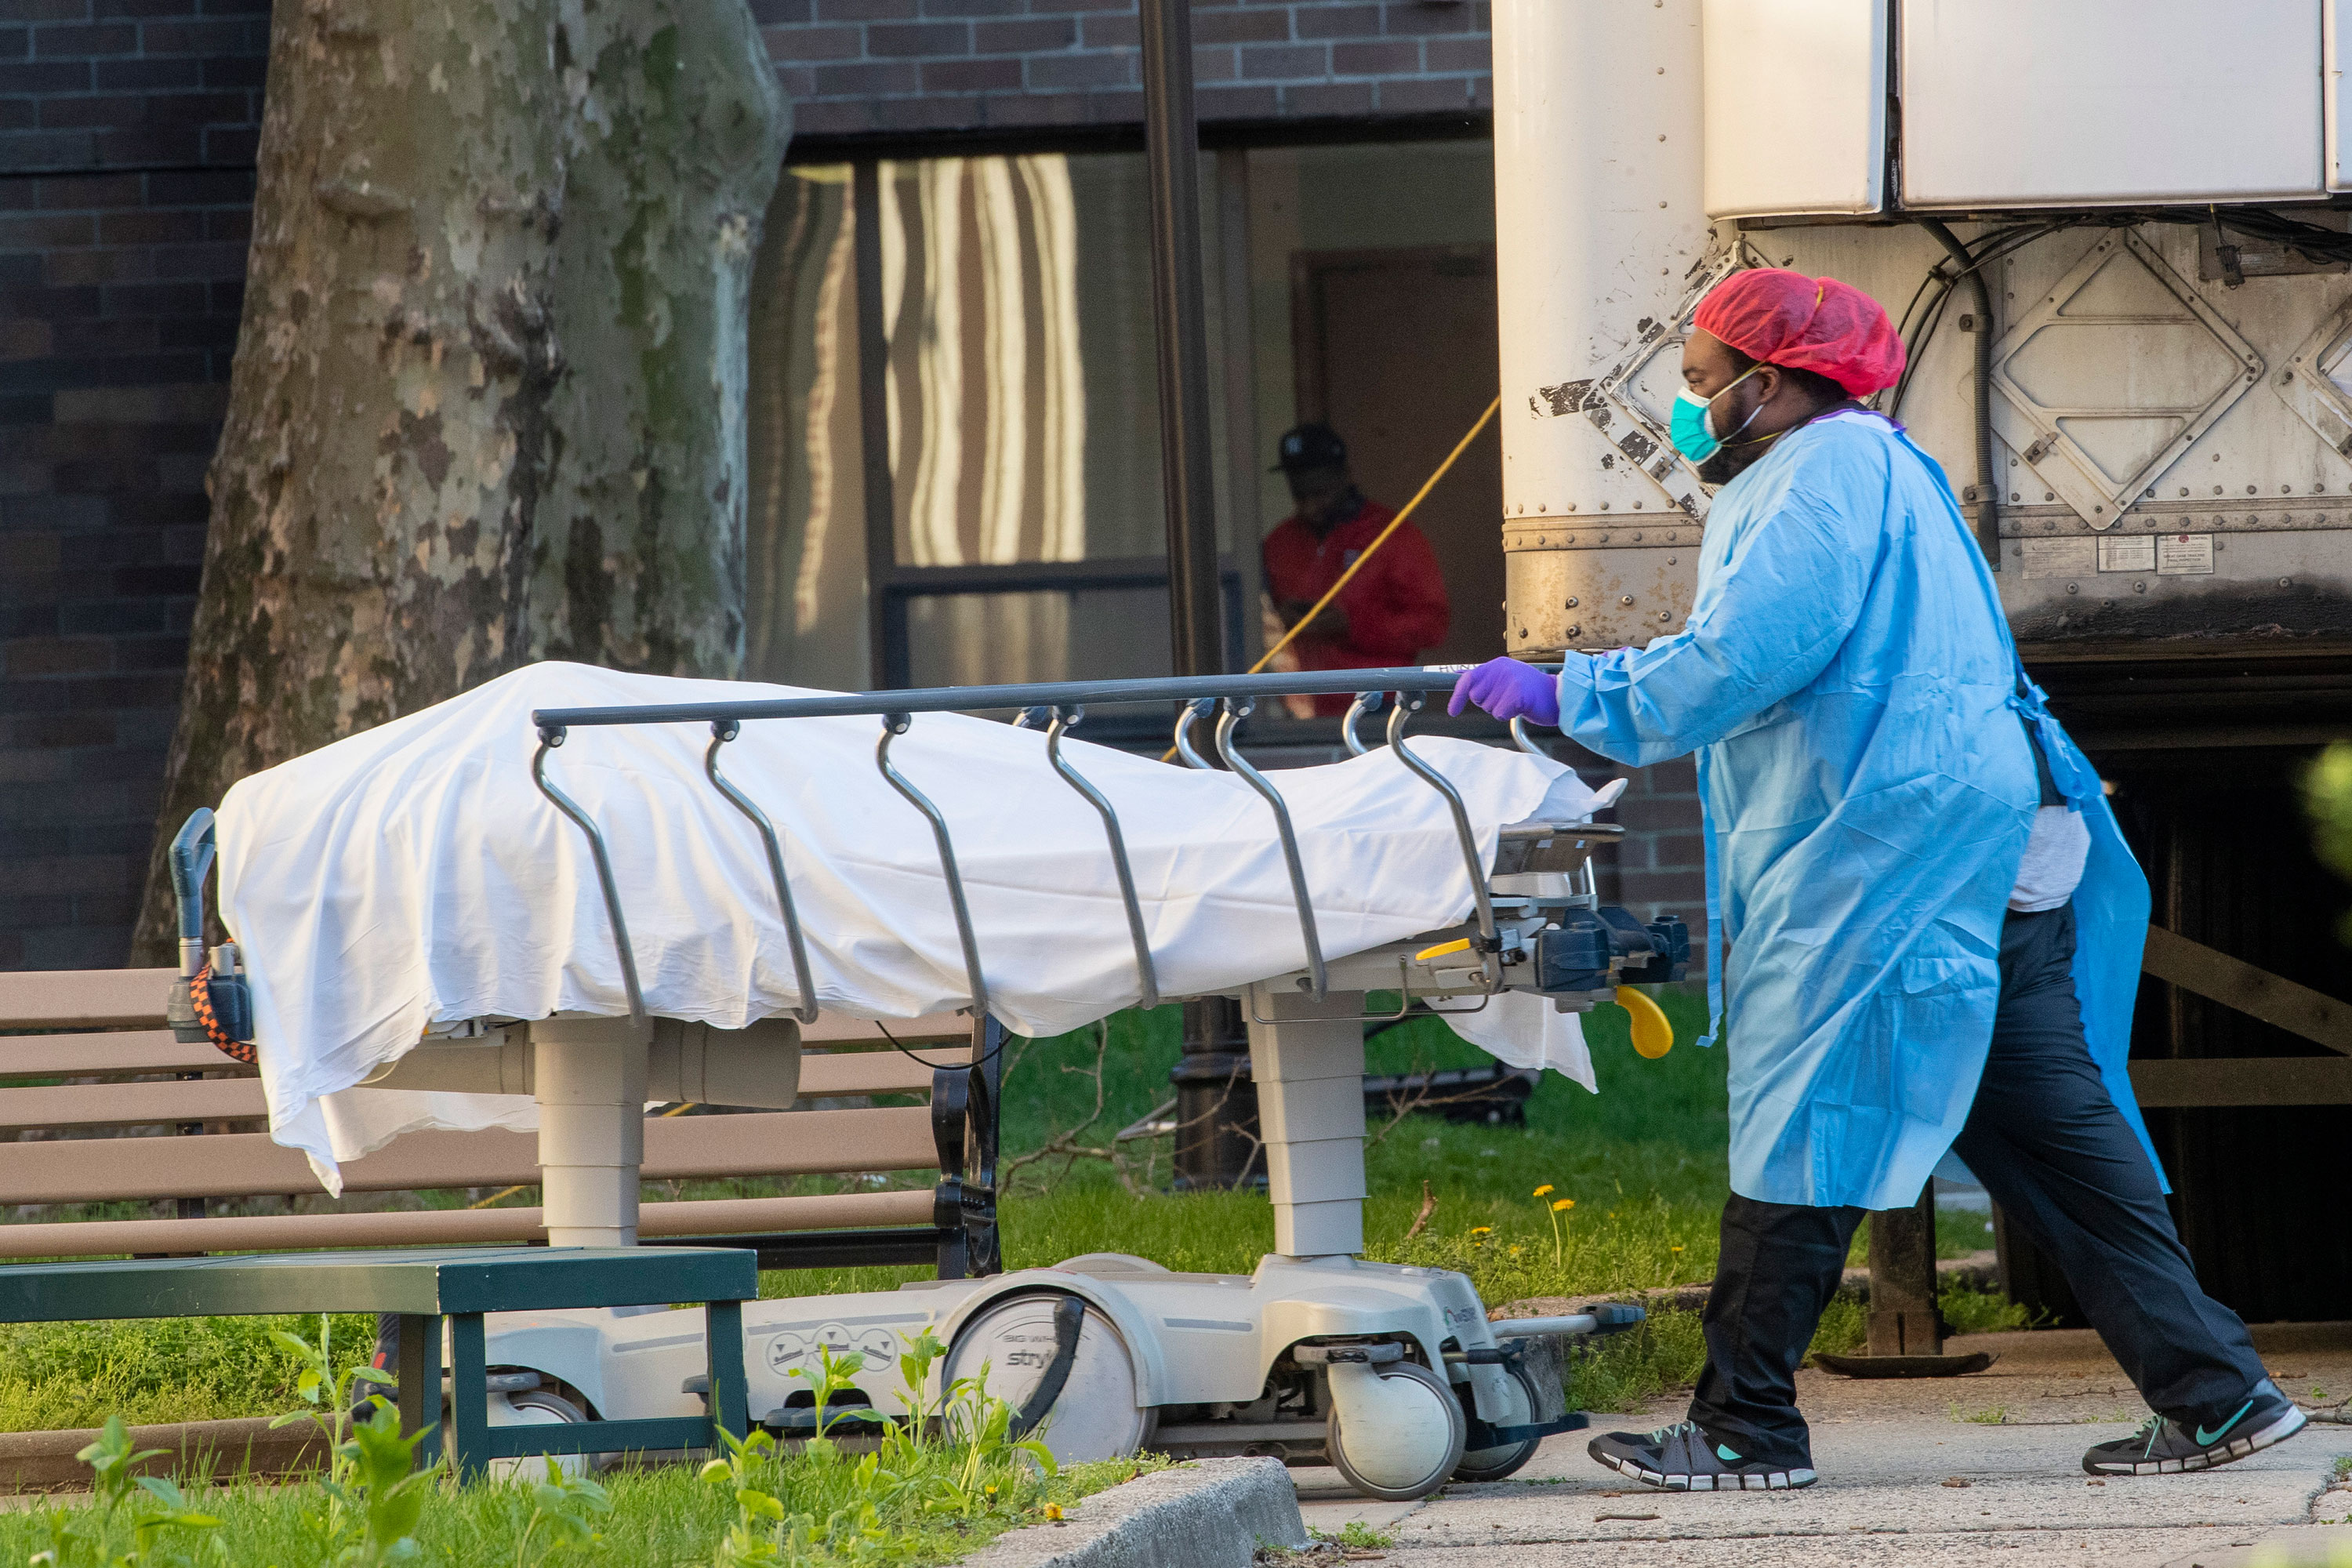 Medical personnel transport a body from a refrigerated container at Kingsbrook Jewish Medical Center, in the Brooklyn borough of New York on April 8.